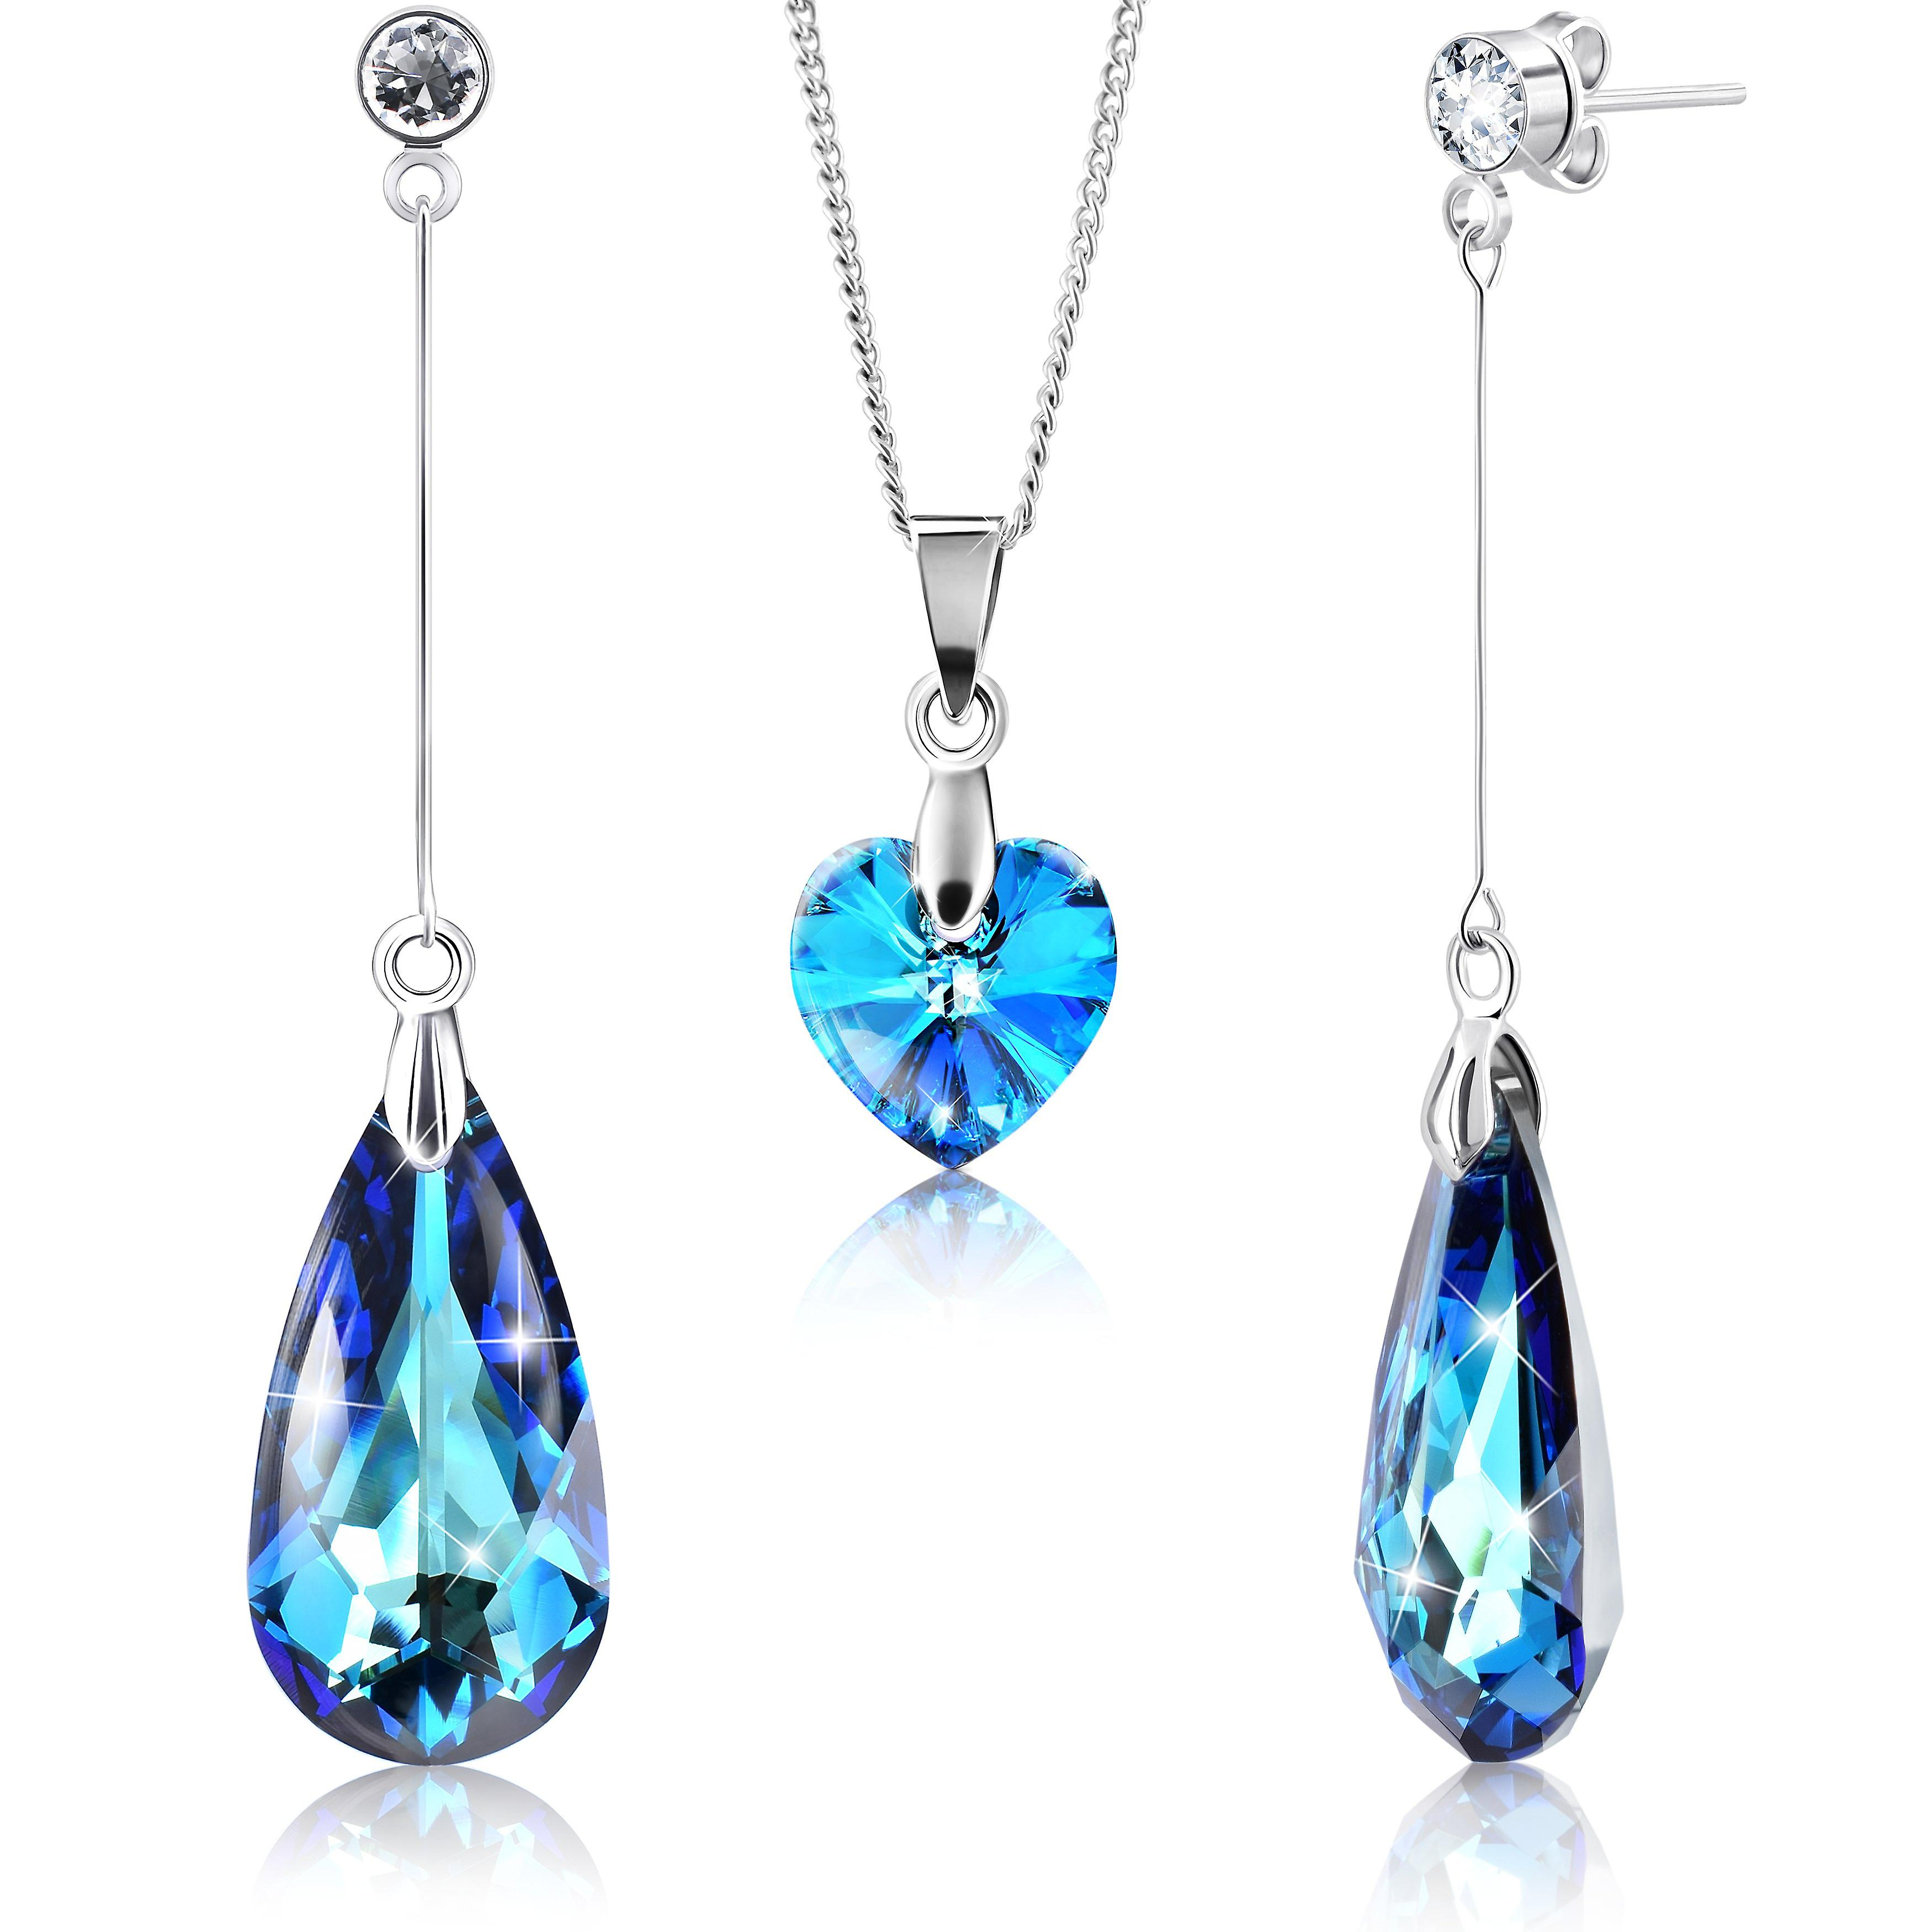 Rhodium plated earrings and necklace set with swarovski crystals by 2splendid. set of 2. gift box. enqz034